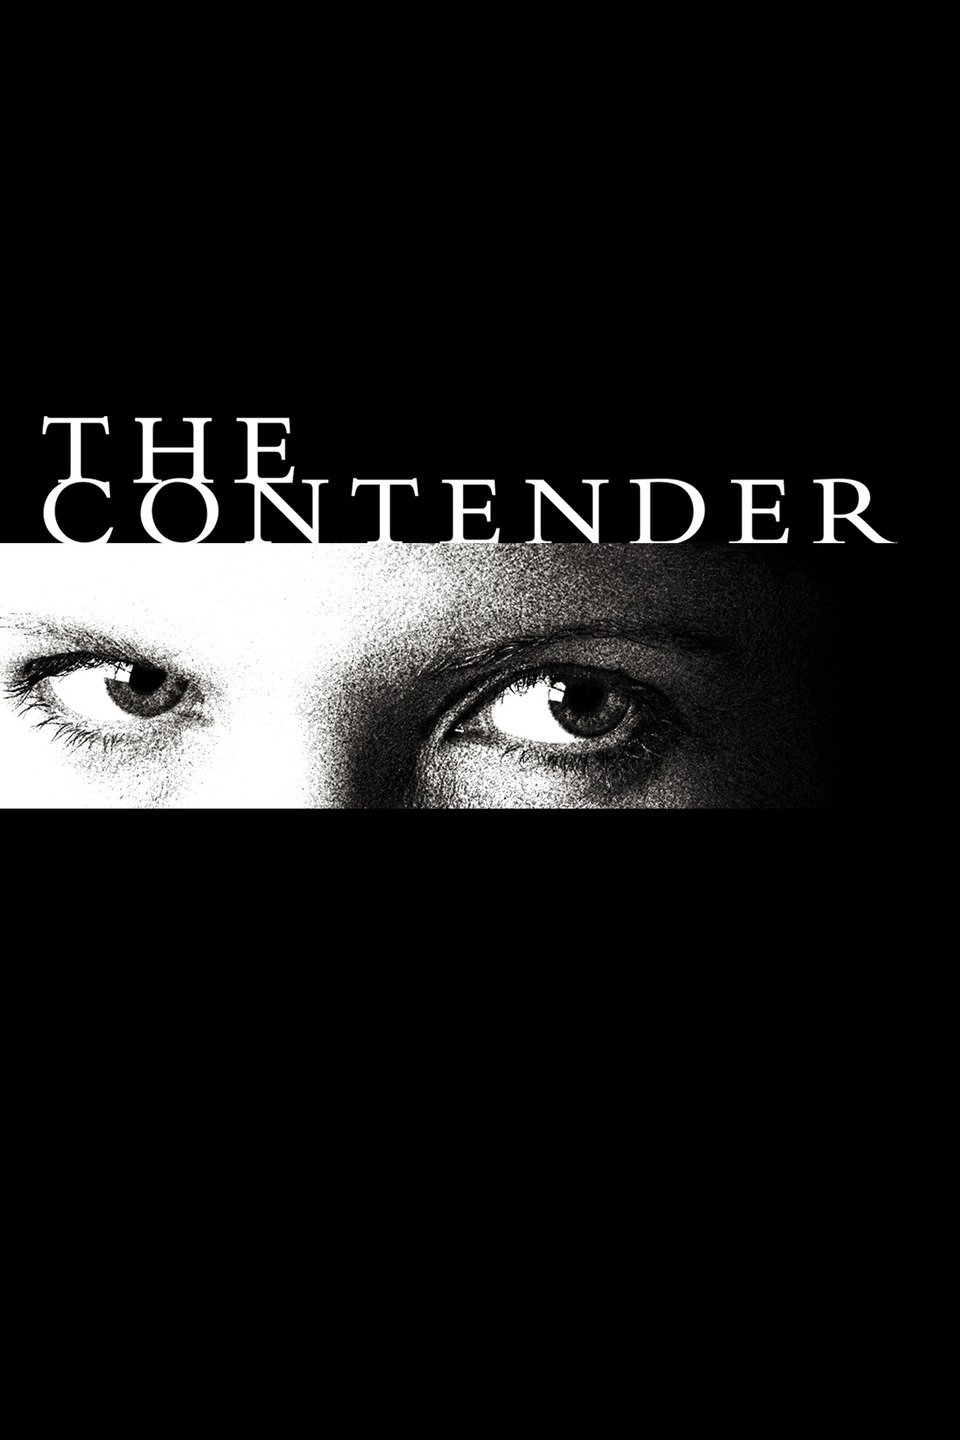 The Contender 2000